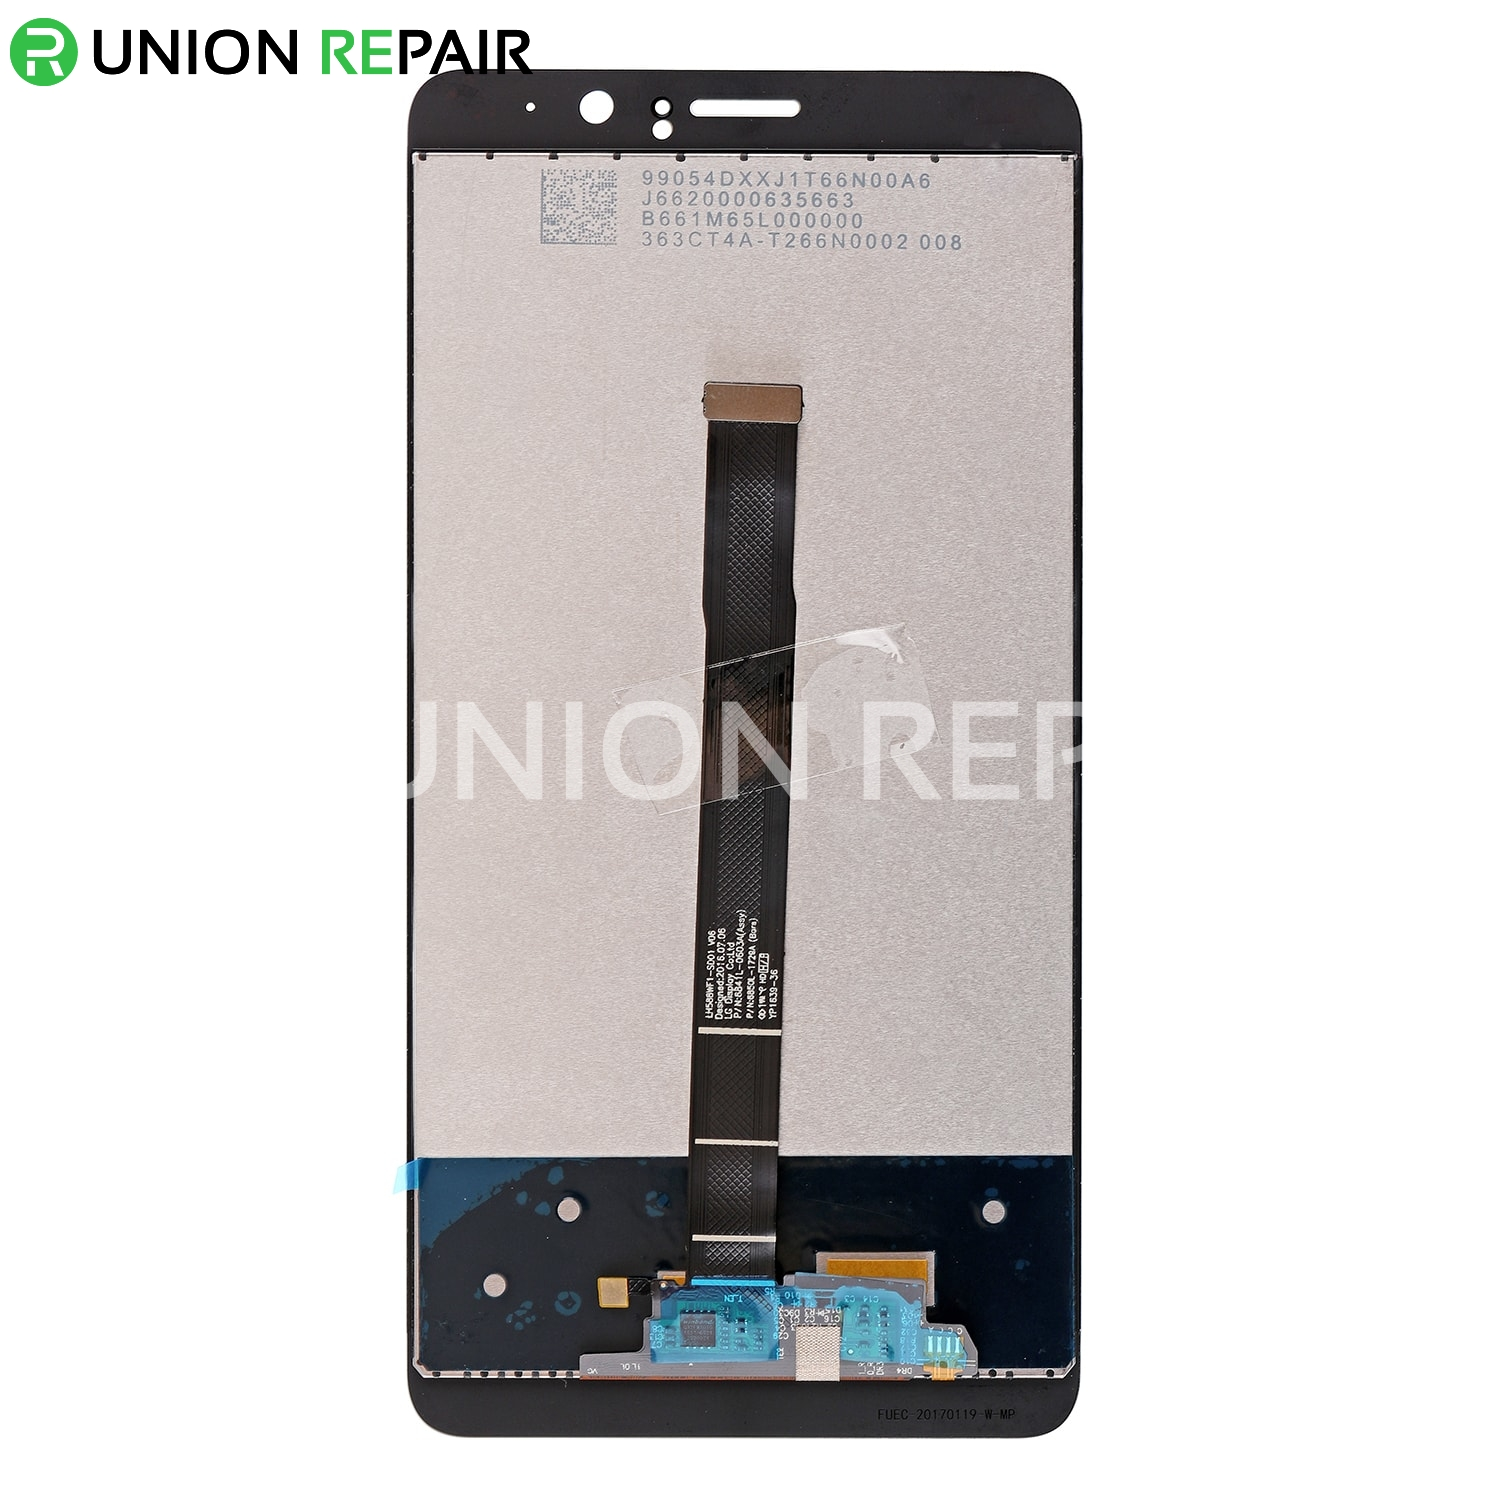 Replacement for Huawei Mate 9 LCD with Digitizer Assembly - White